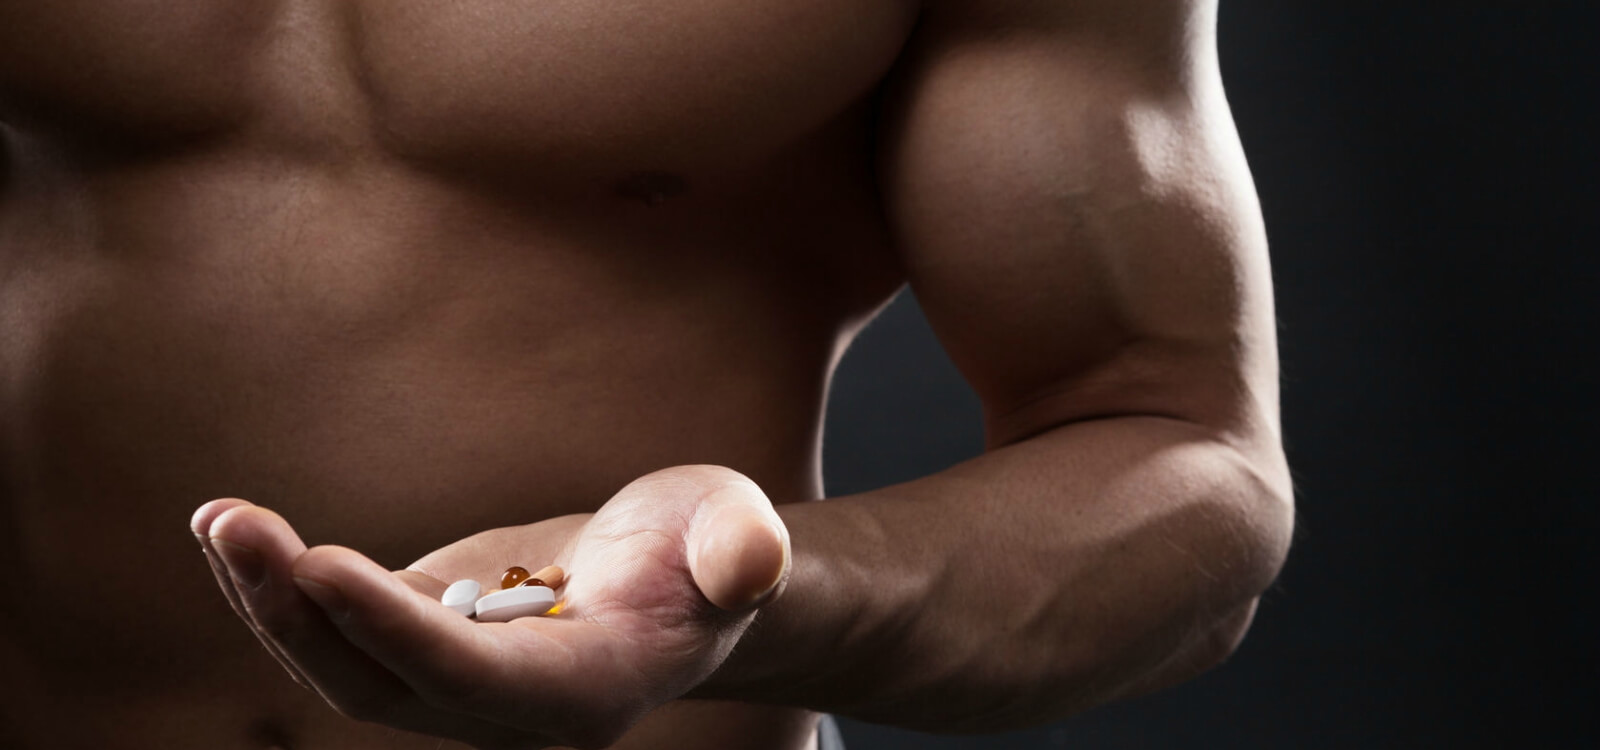 painkillers weight training